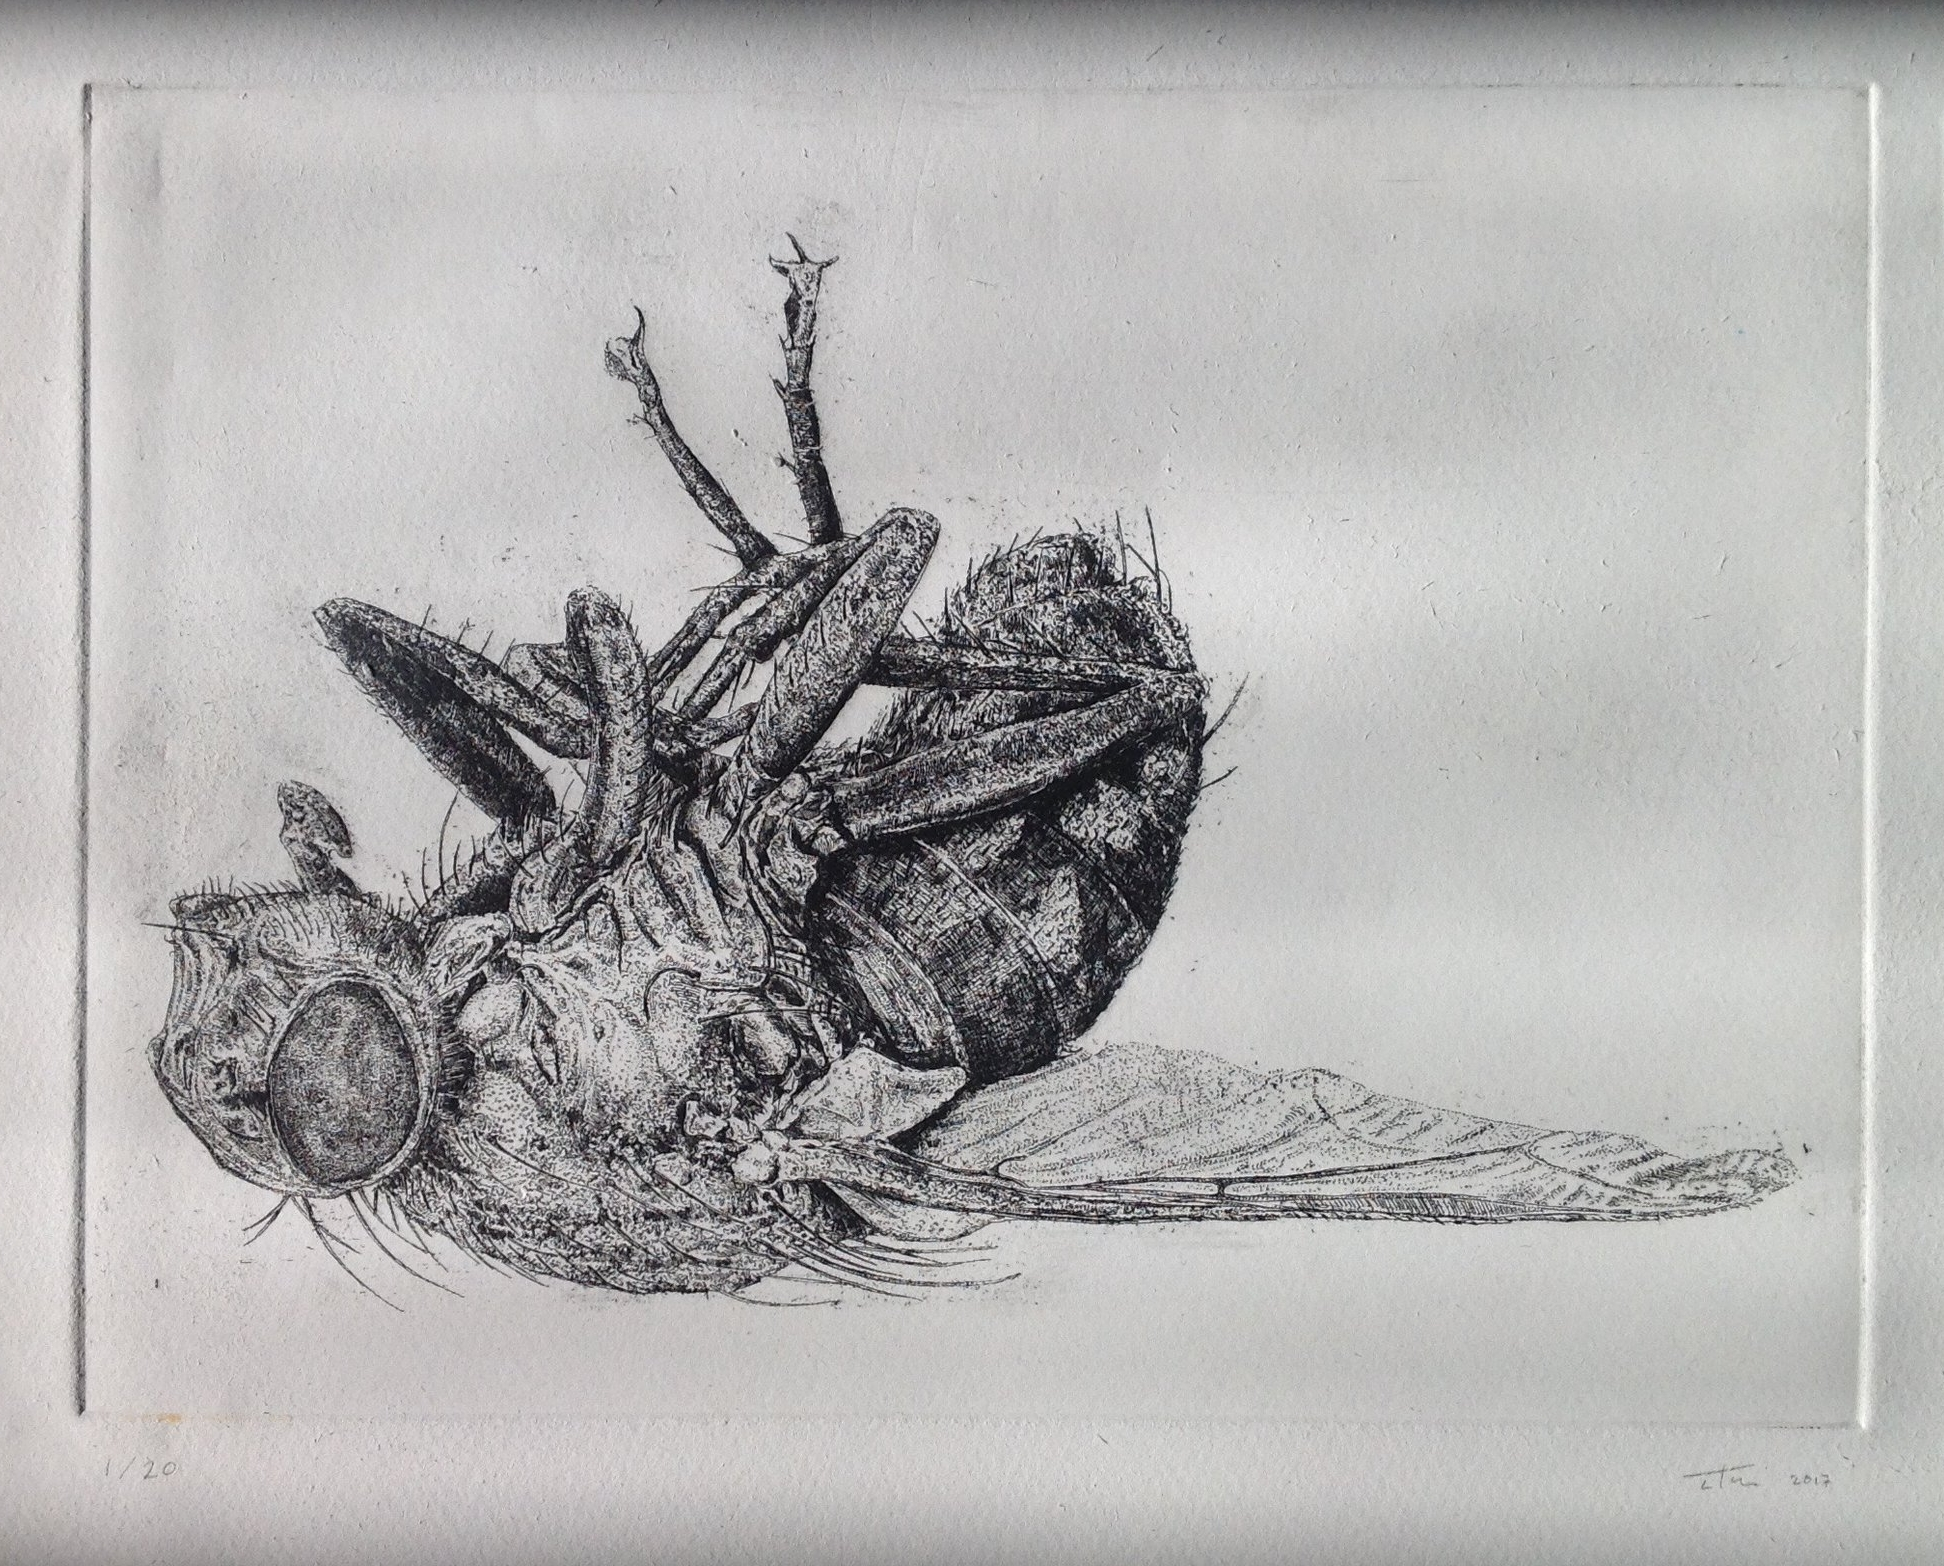 'DEAD FLY'  2017  HARD GROUND ON SOMERSET SATIN  320x280mm  EDITION OF 20,  £150